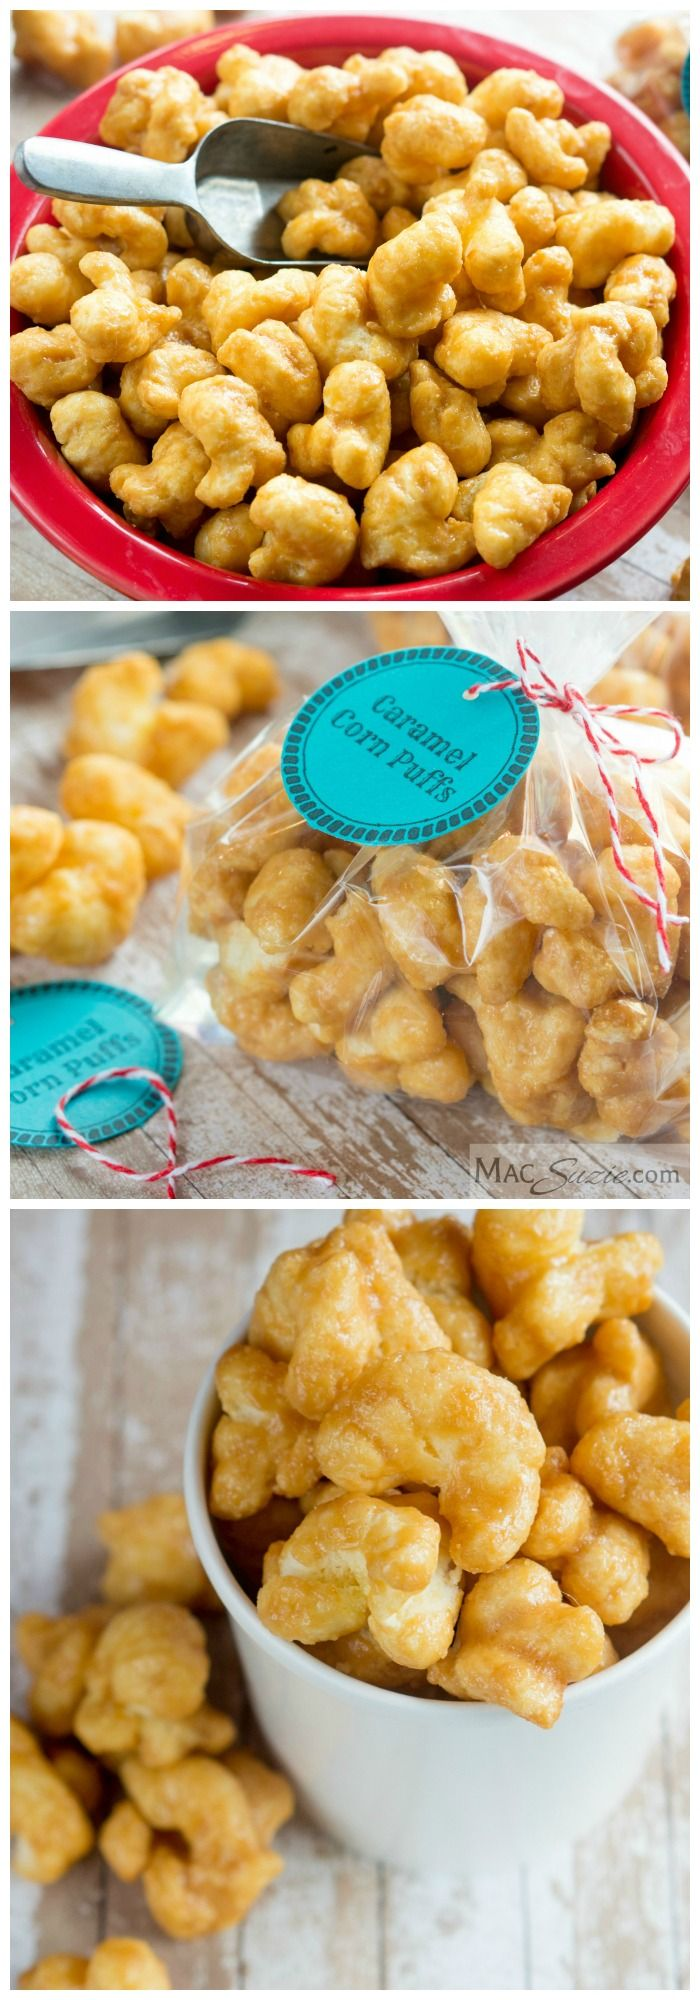 MacSuzie   Caramel Corn Puffs - These crunchy, salty, sweet, melt-in-your-mouth bites have all the flavor of homemade caramel popcorn, without the annoying hulls! Good luck trying to eat only one handful...